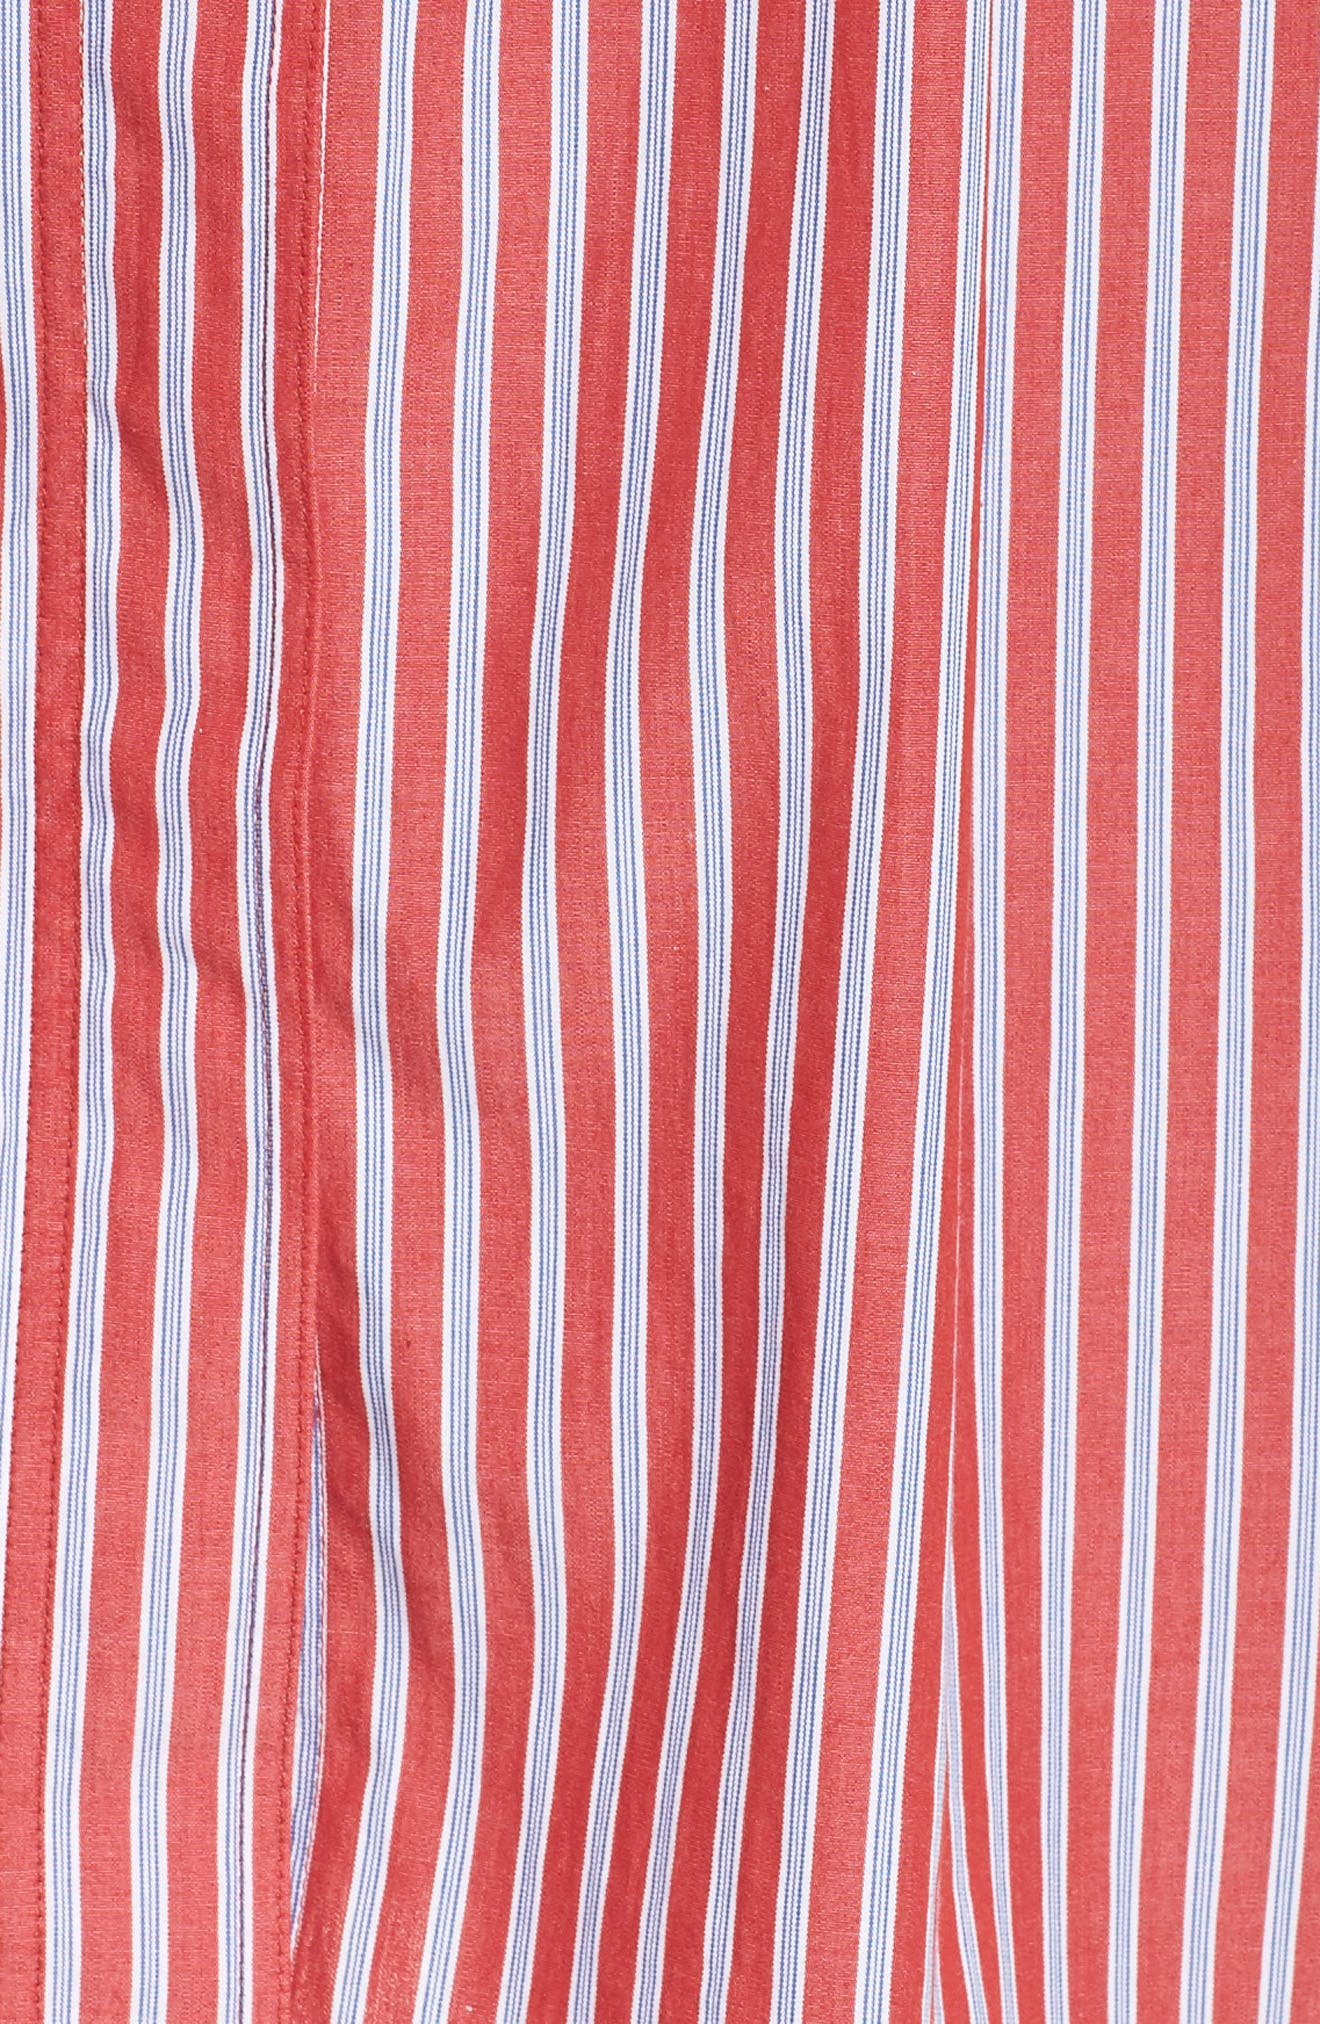 Stripe Tie Waist Shirtdress,                             Alternate thumbnail 6, color,                             RED- WHITE STRIPE